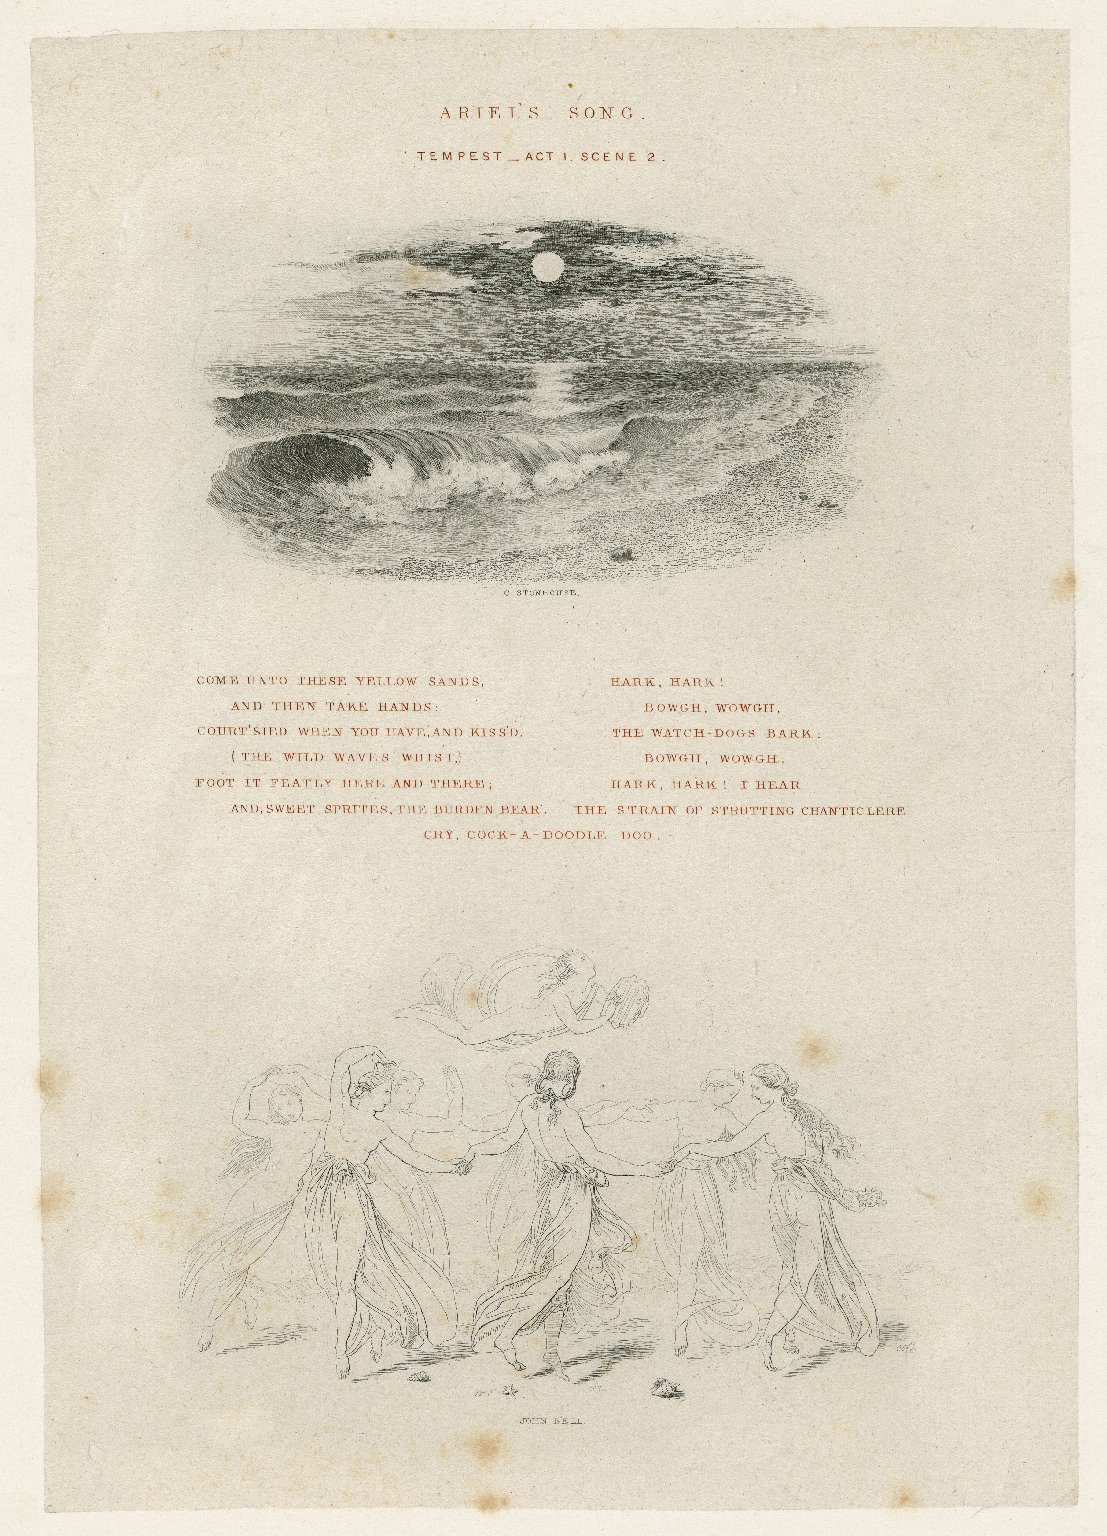 Ariel's song, Tempest, act 1, scene 2: Come unto these yellow sands [graphic] / C. Stonhouse [part 1] ; John Bell [part 2].